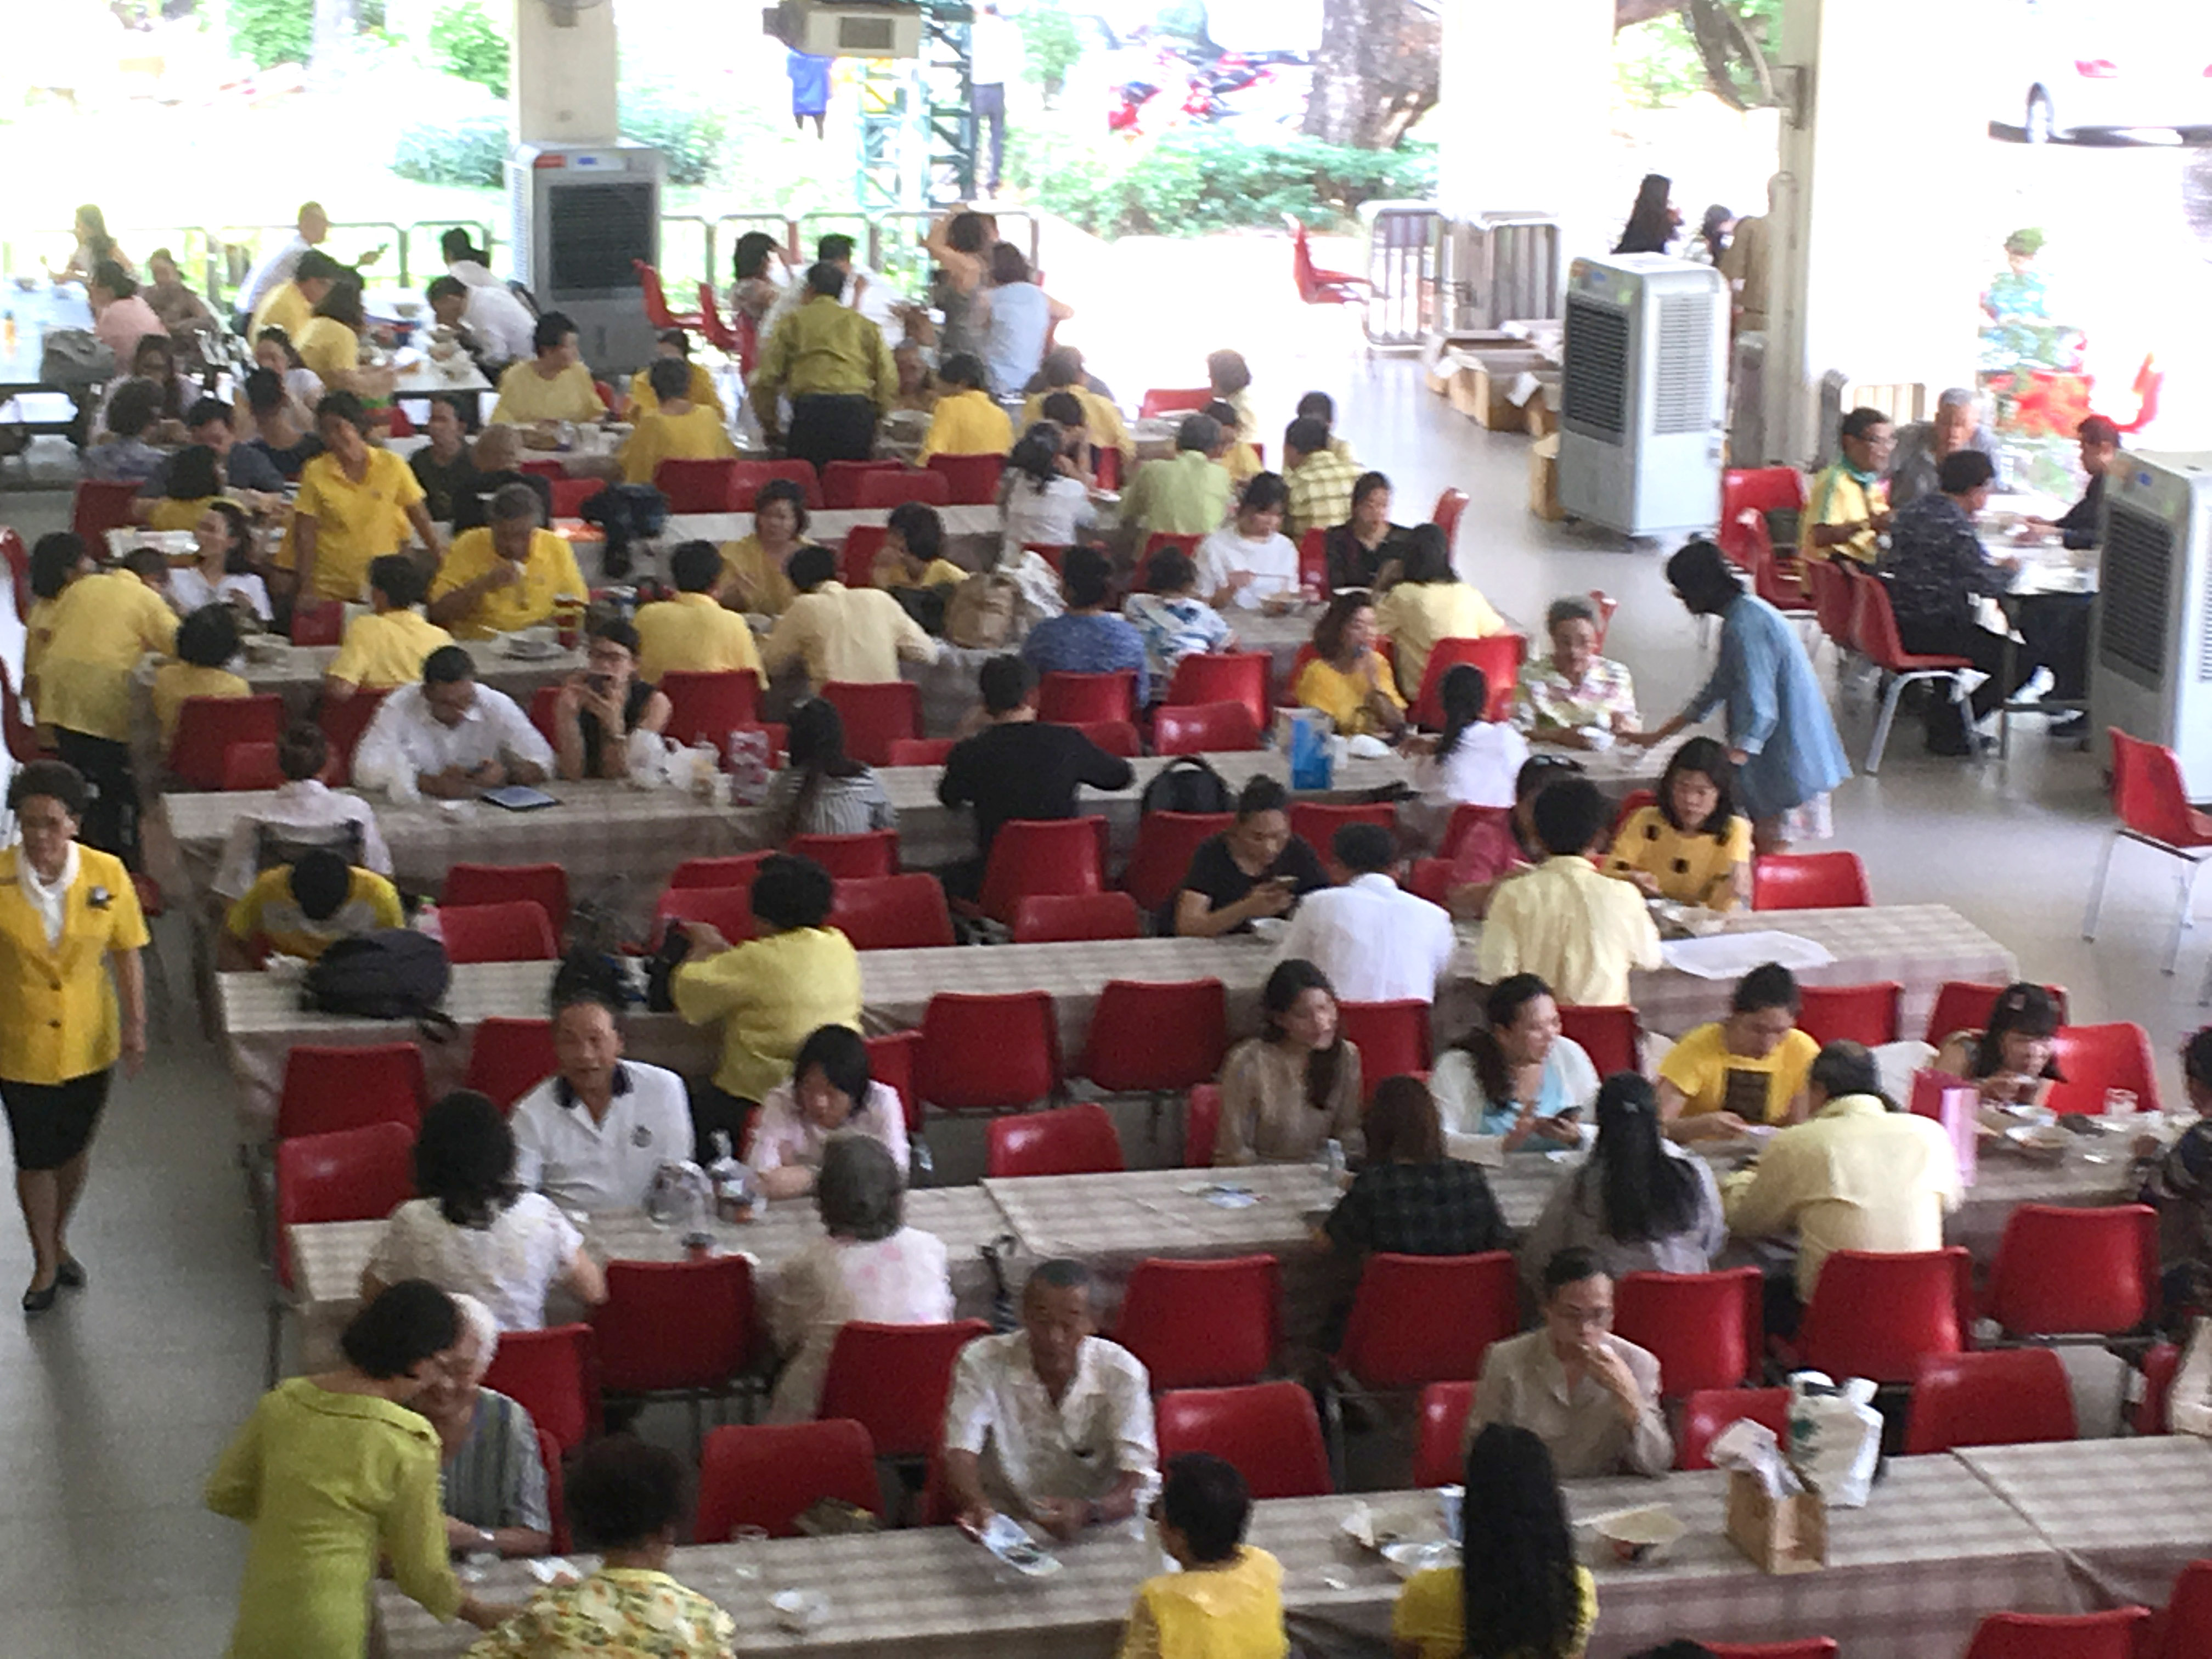 Thailand_Anne_Gregory_The_Beloved_Community_-_Sunday_lunch_-_yellow_shirts_honor_the_new_King.jpg